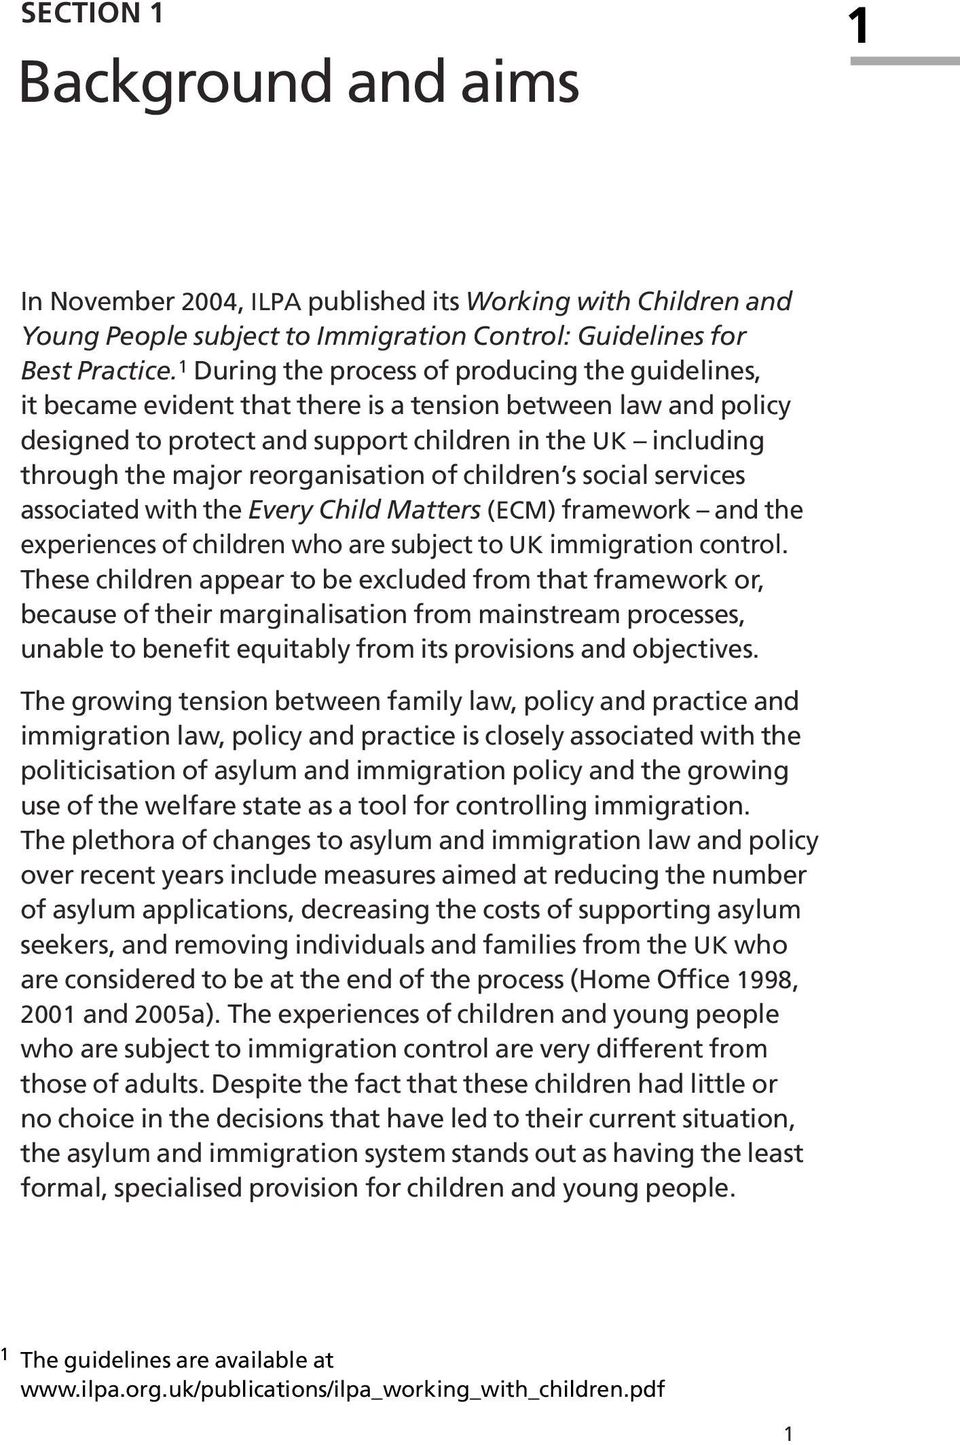 reorganisation of children s social services associated with the Every Child Matters (ECM) framework and the experiences of children who are subject to UK immigration control.